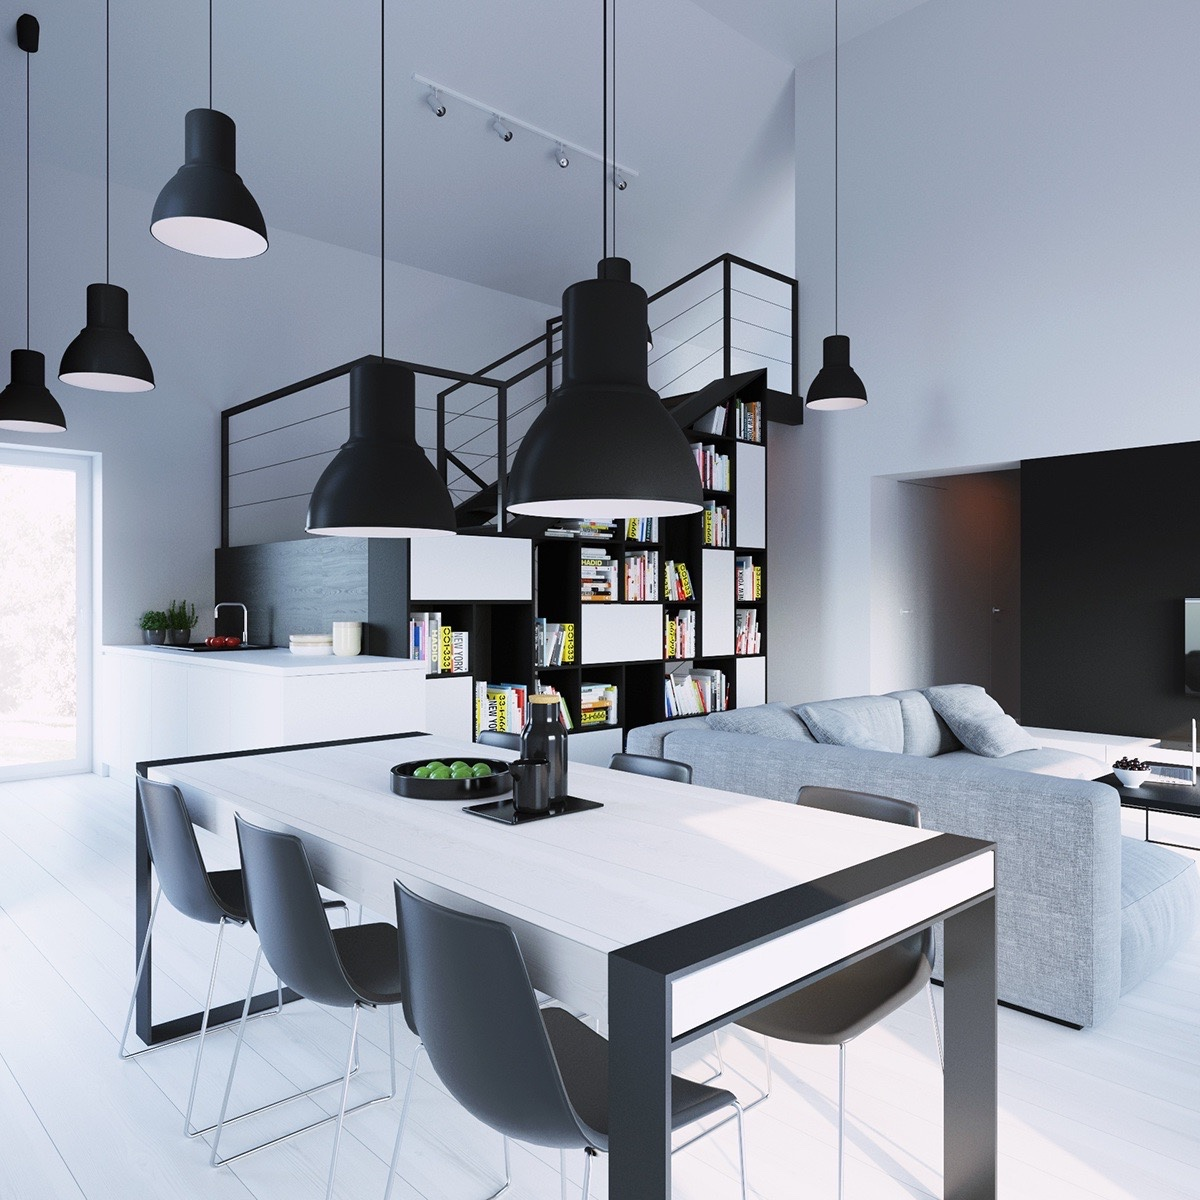 black and white modern furniture. Black And White Modern Furniture E